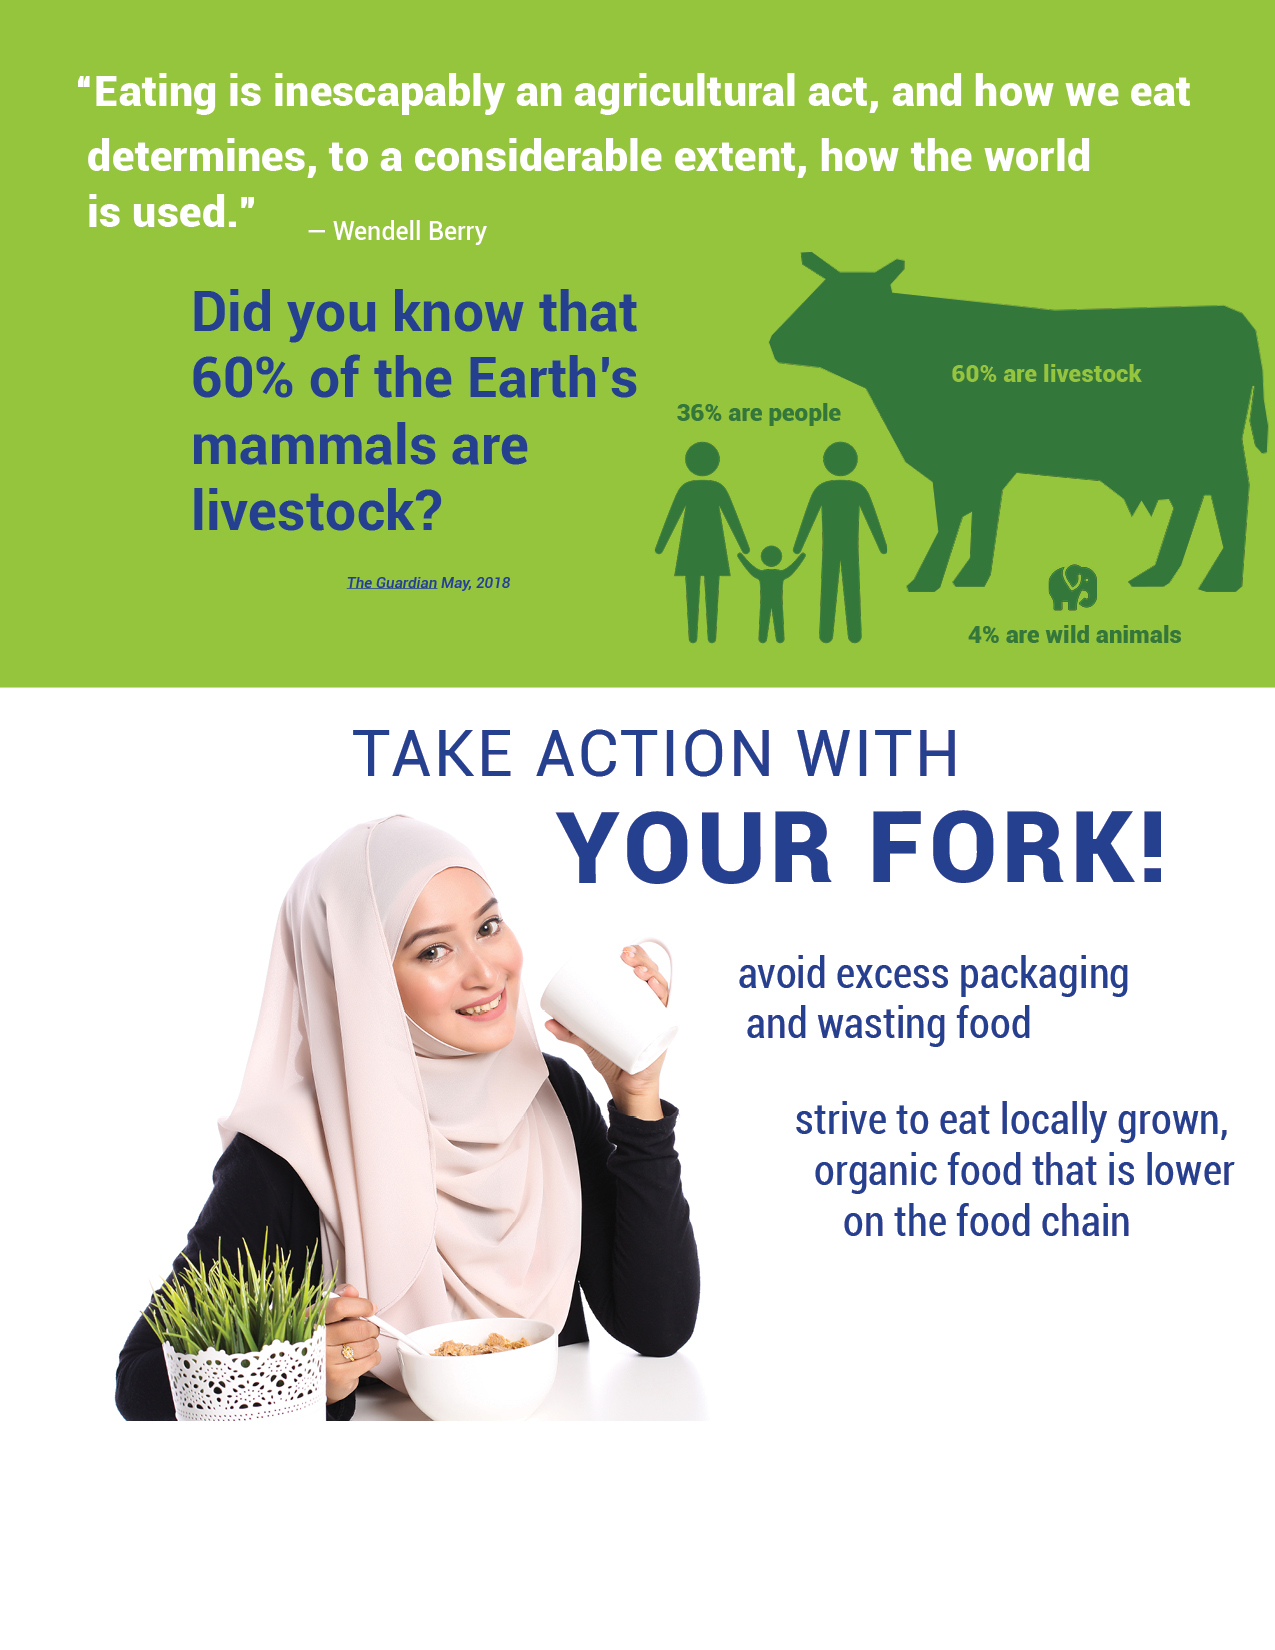 Did you know that 60% of the Earth's mammals are livestock?